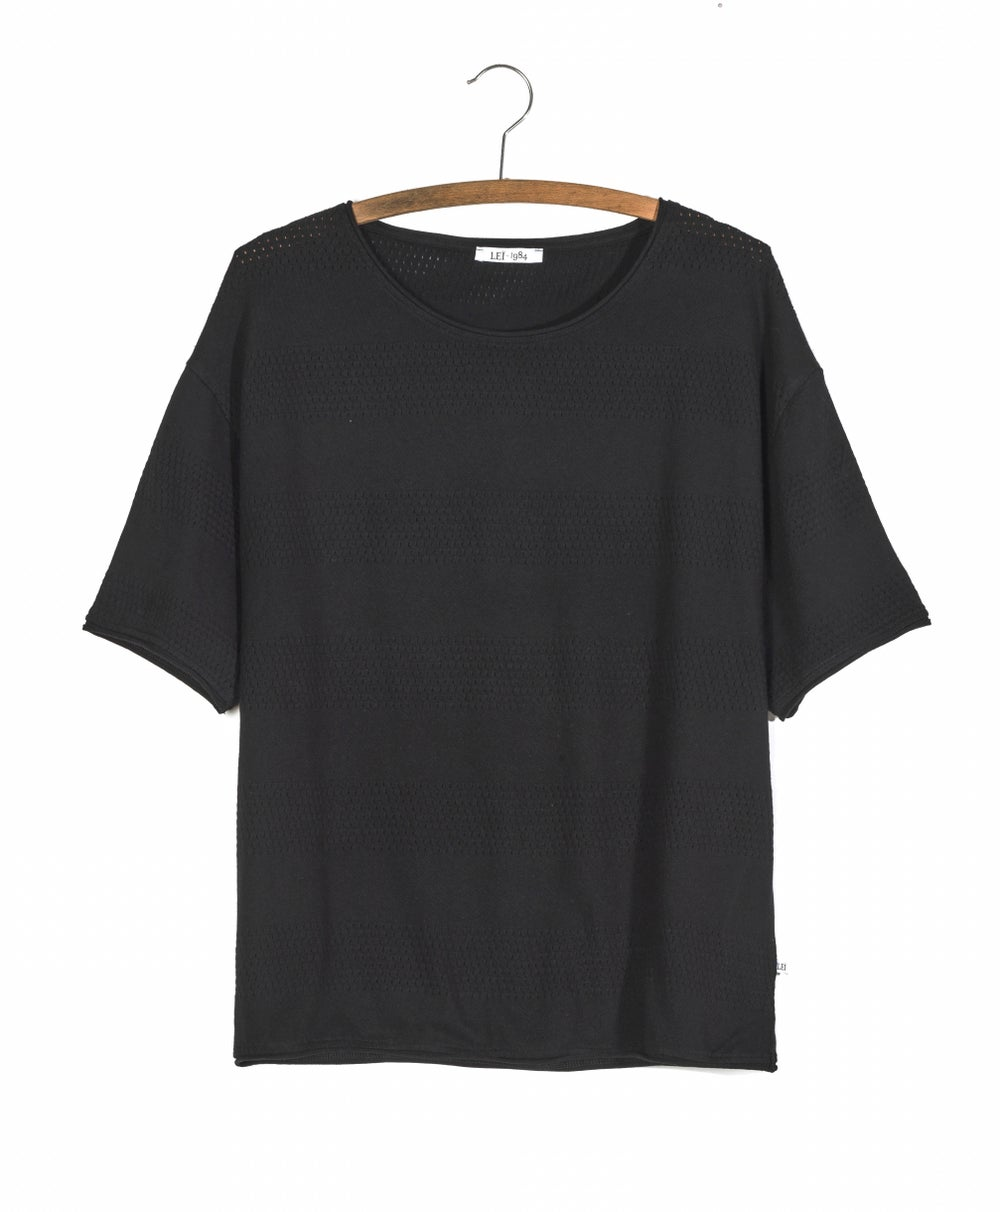 Image of Tee shirt rayures ajourées ANTO 59€ -60%